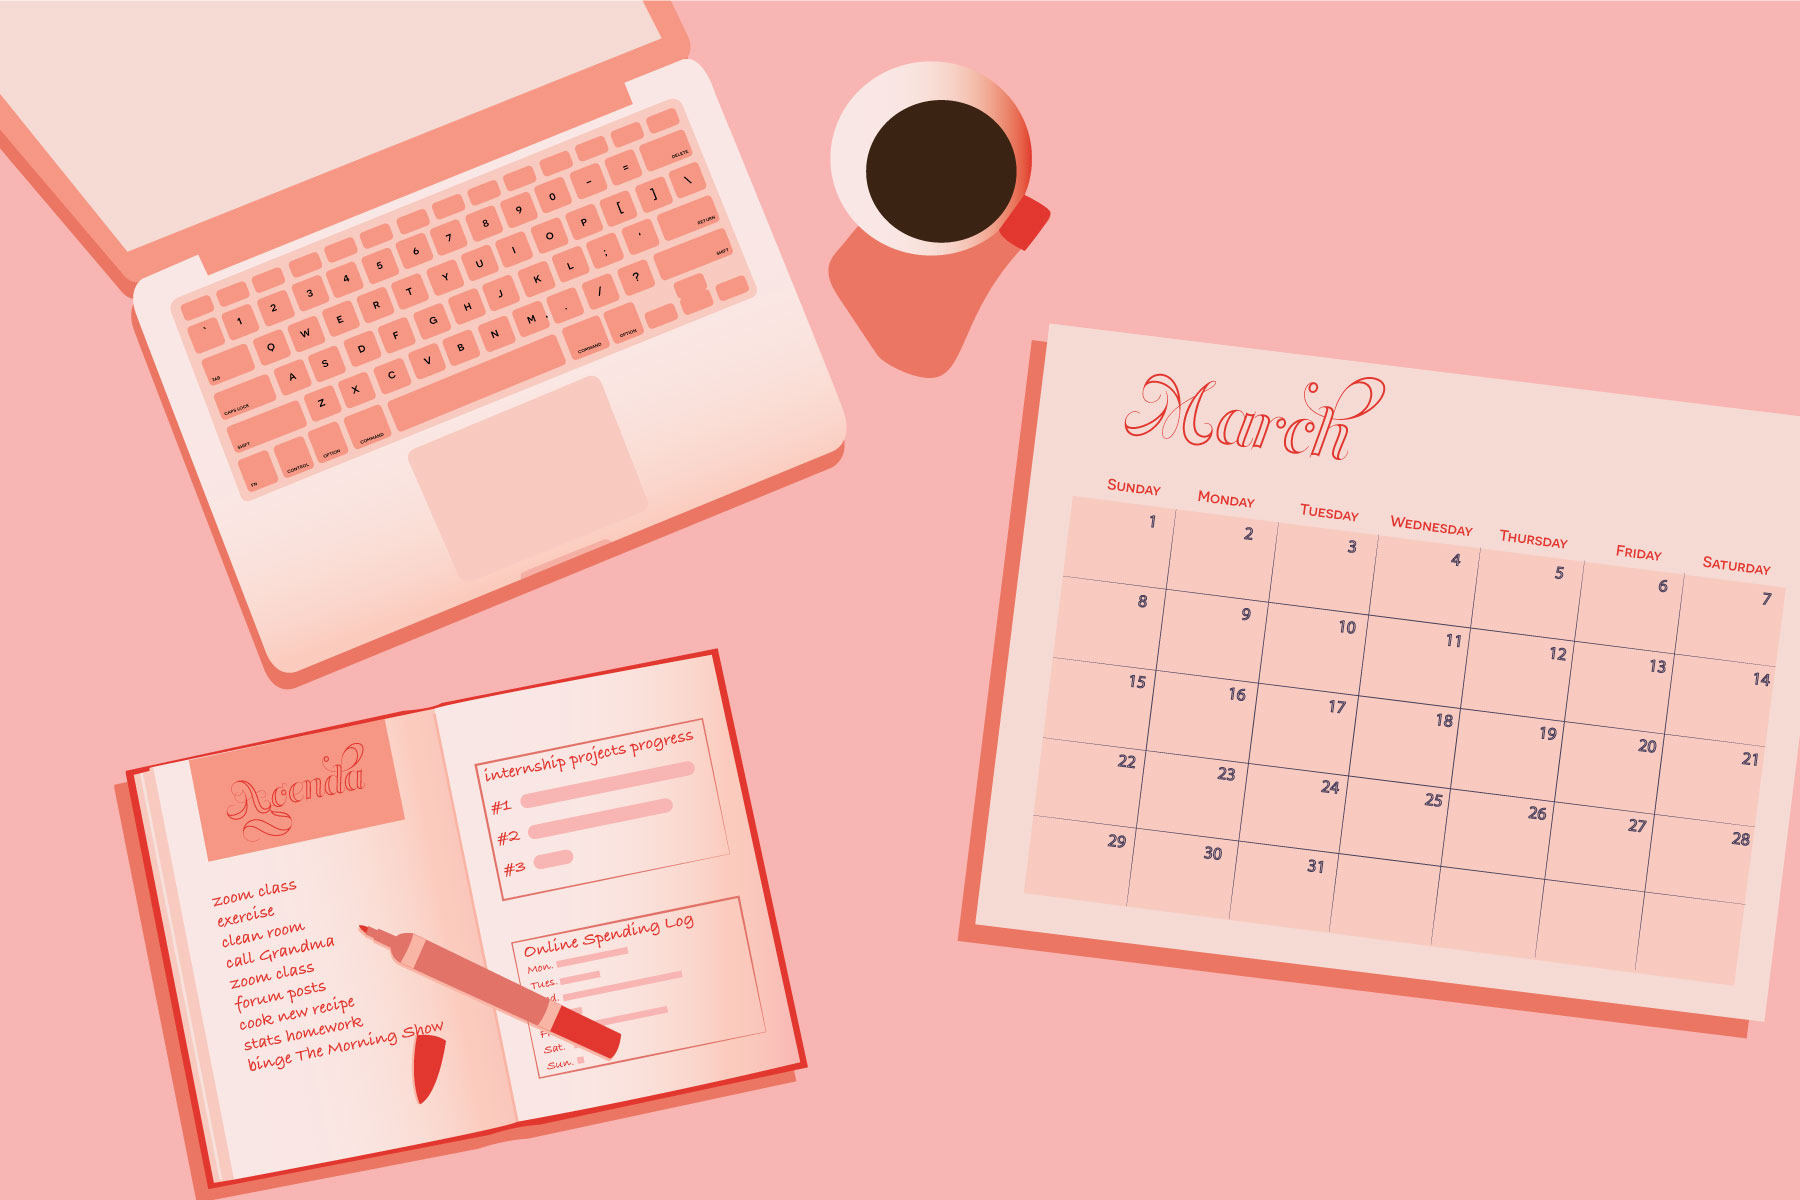 Illustration by Maya Vargas on a laptop, calendar and planner on desk in article about taking class from home